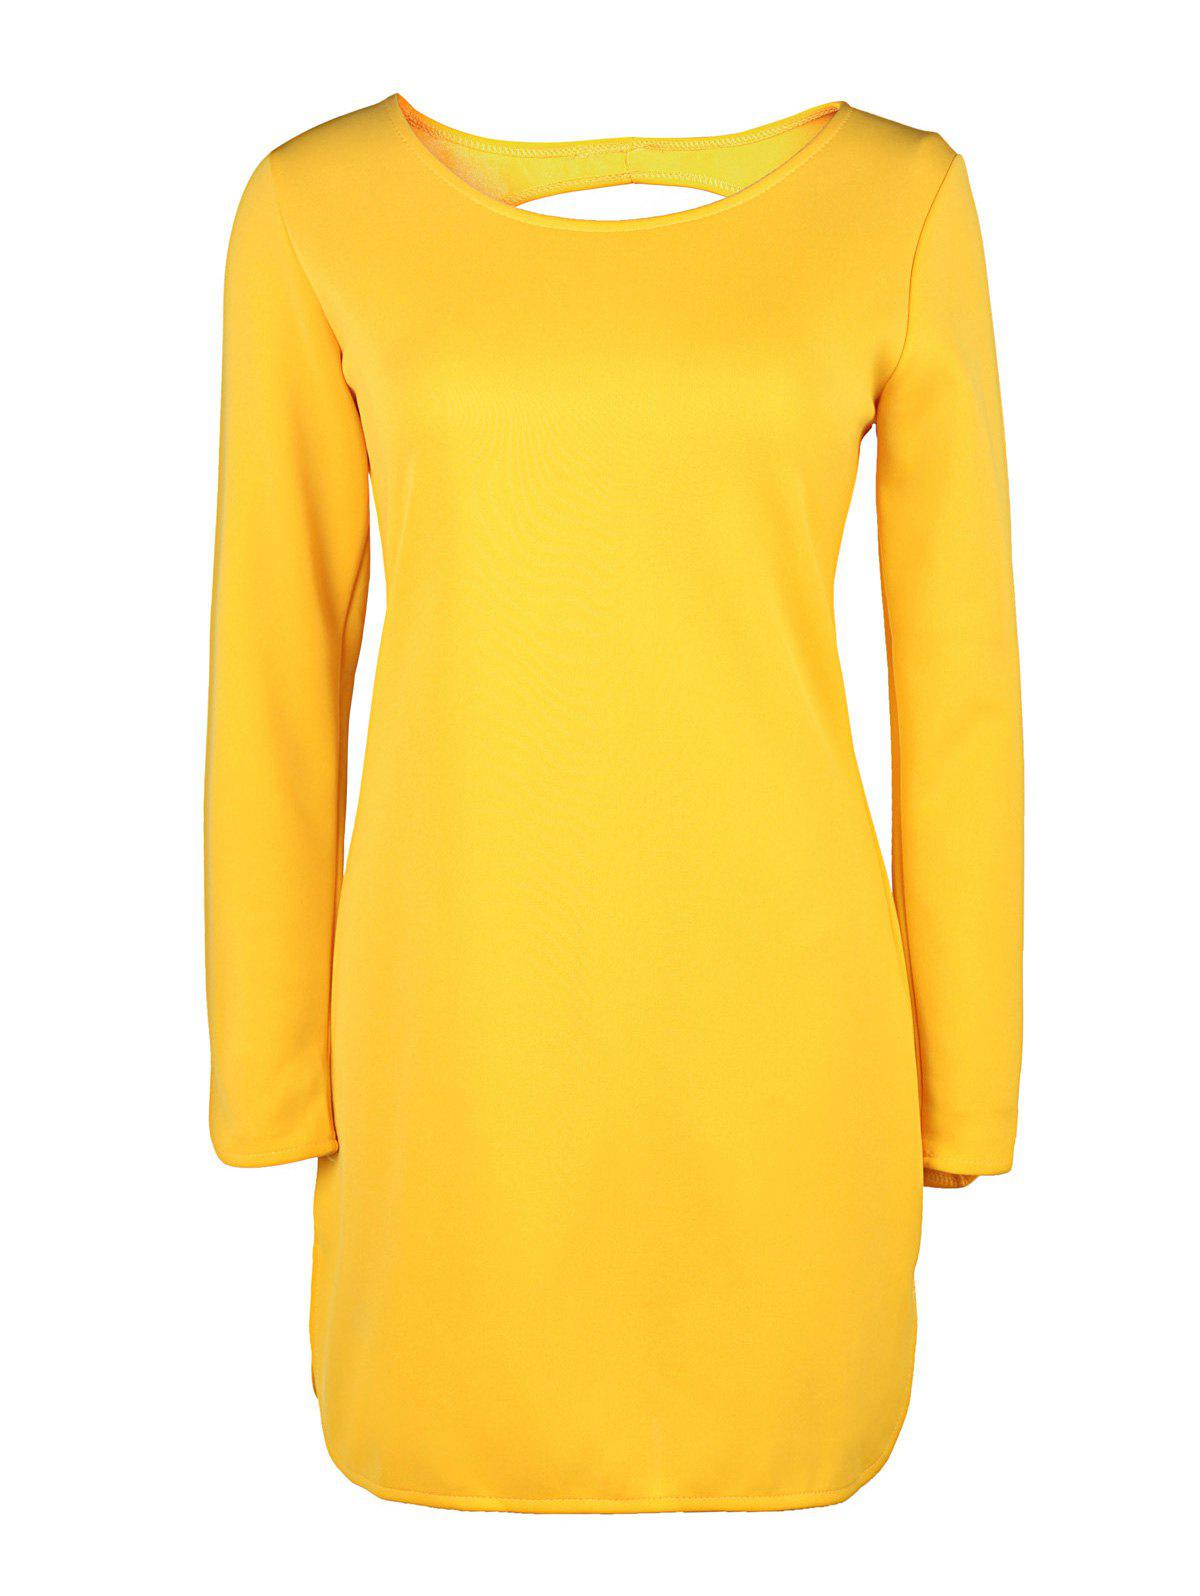 Brief Style Long Sleeve Round Collar Hollow Out Women's Yellow Dress